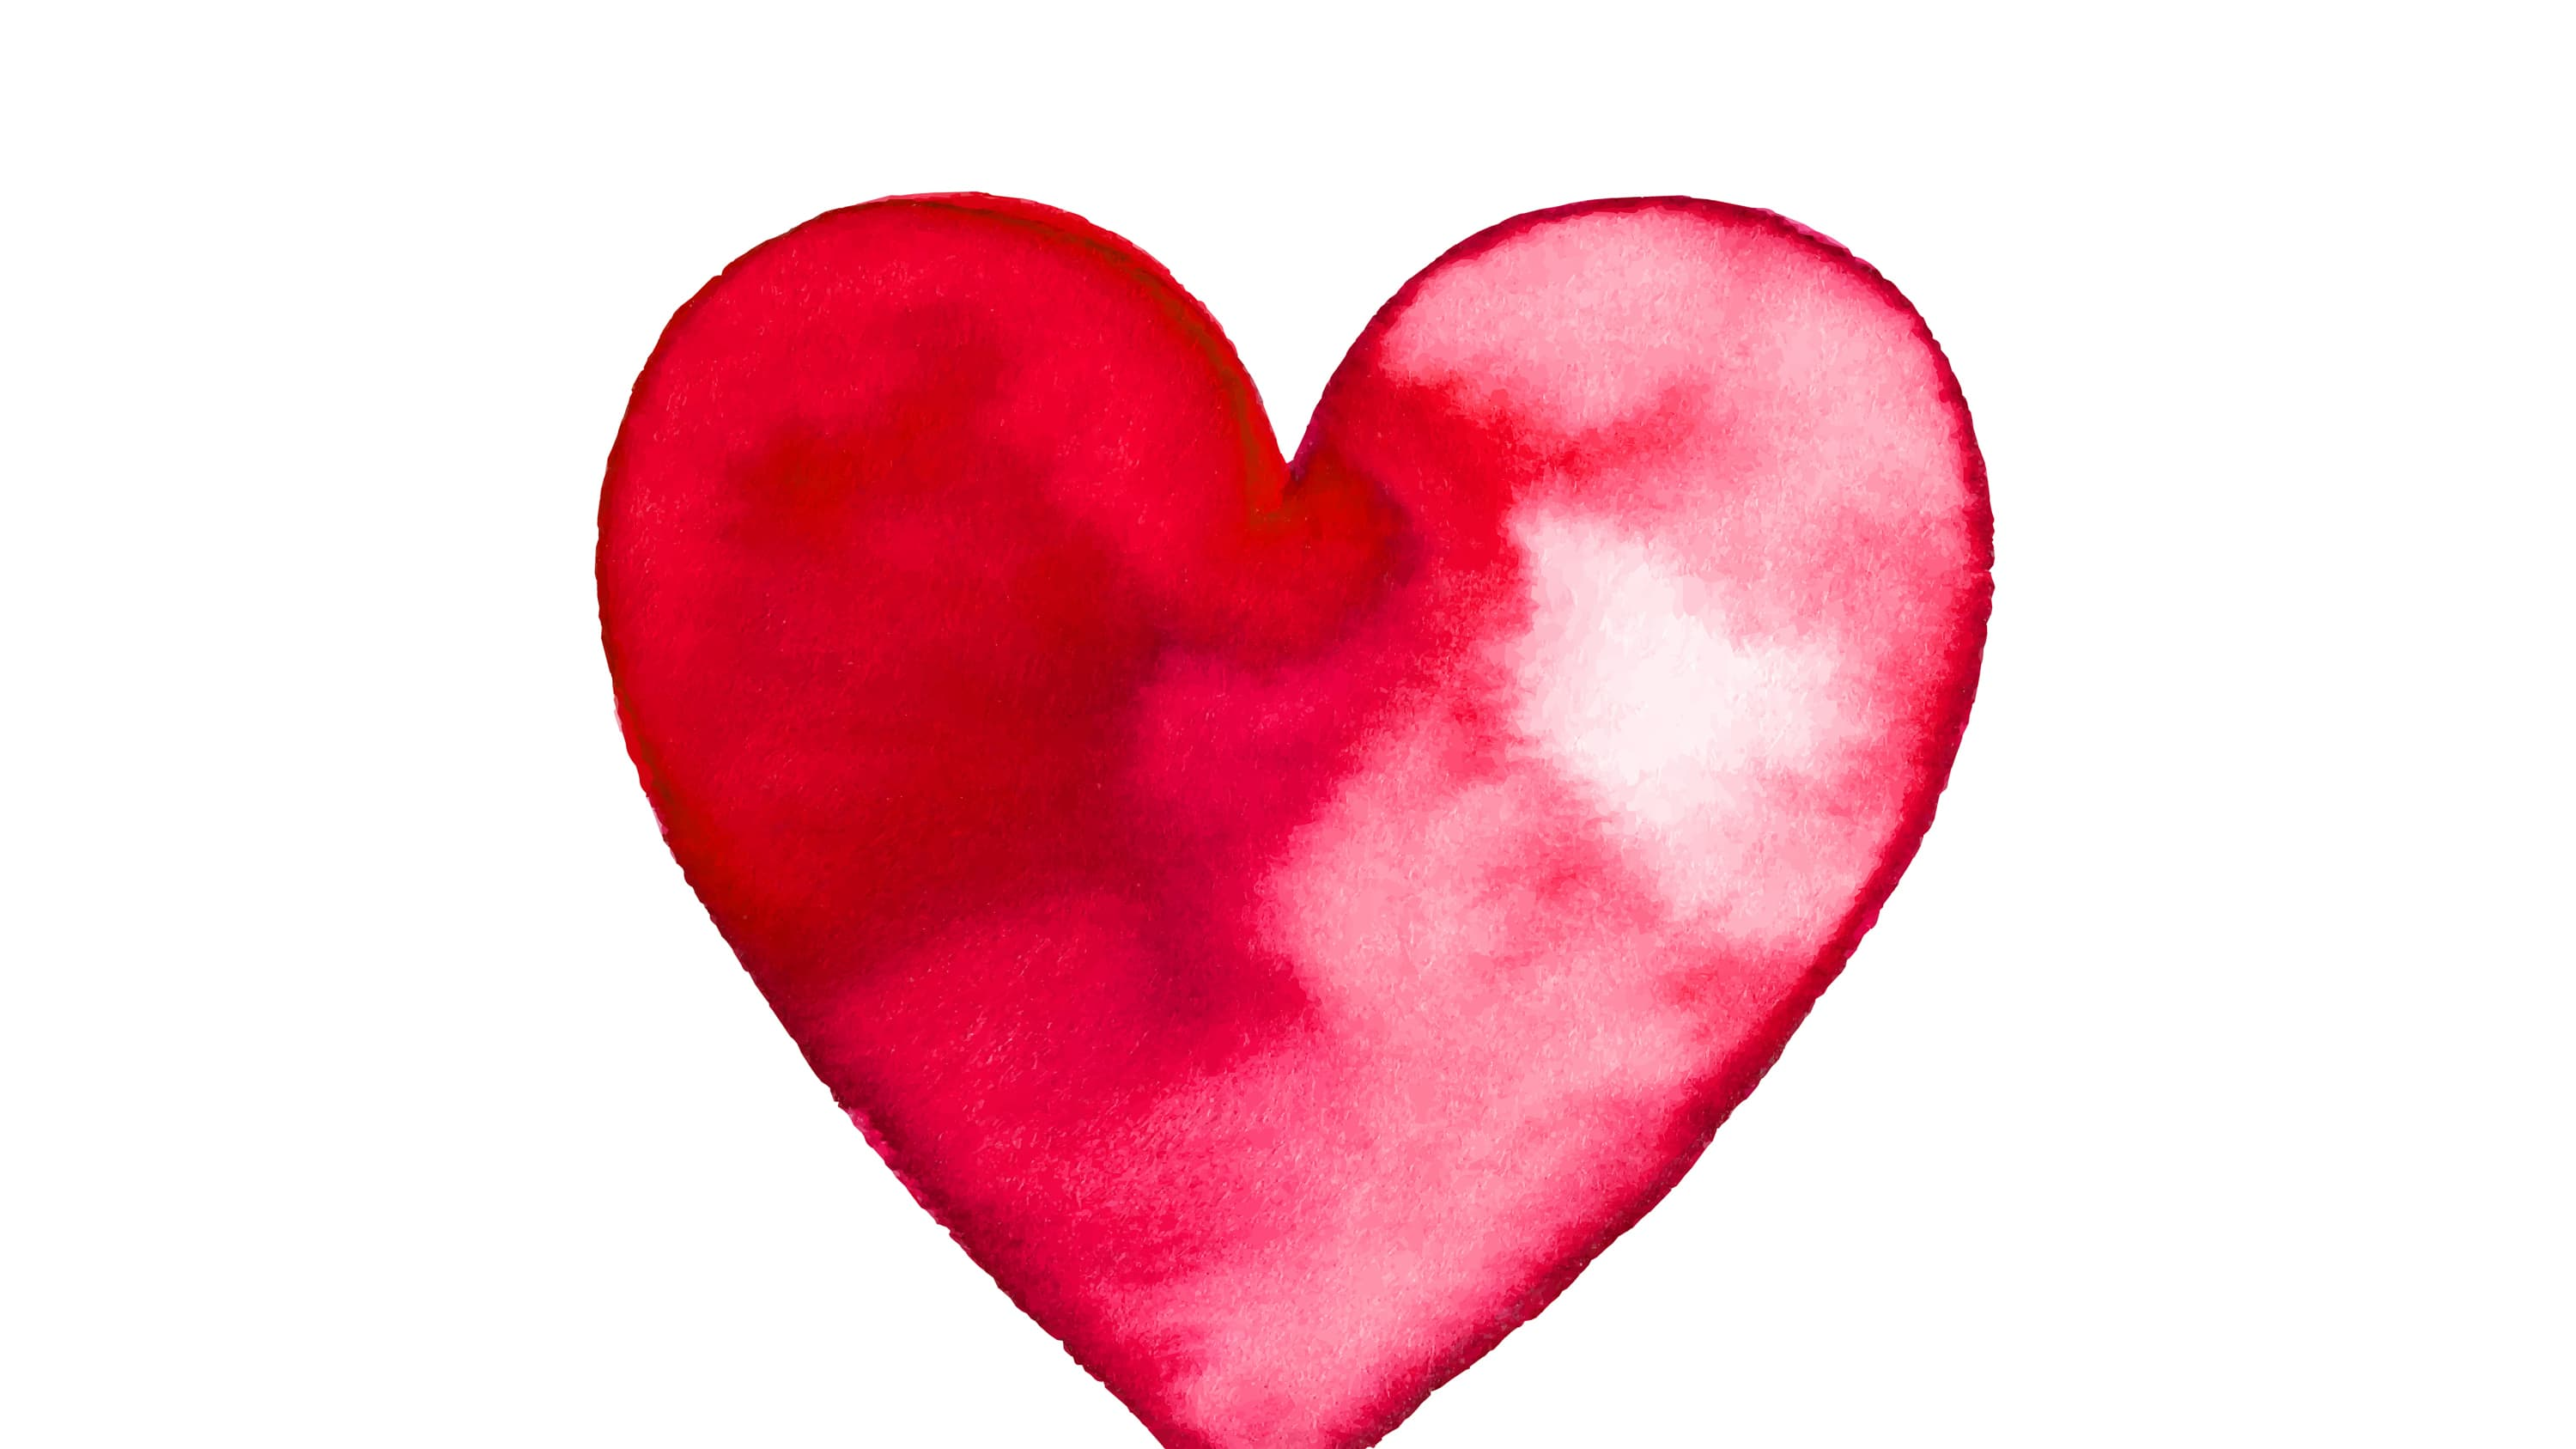 water color painting of a heart, to represent how men and women experience heart disease differently